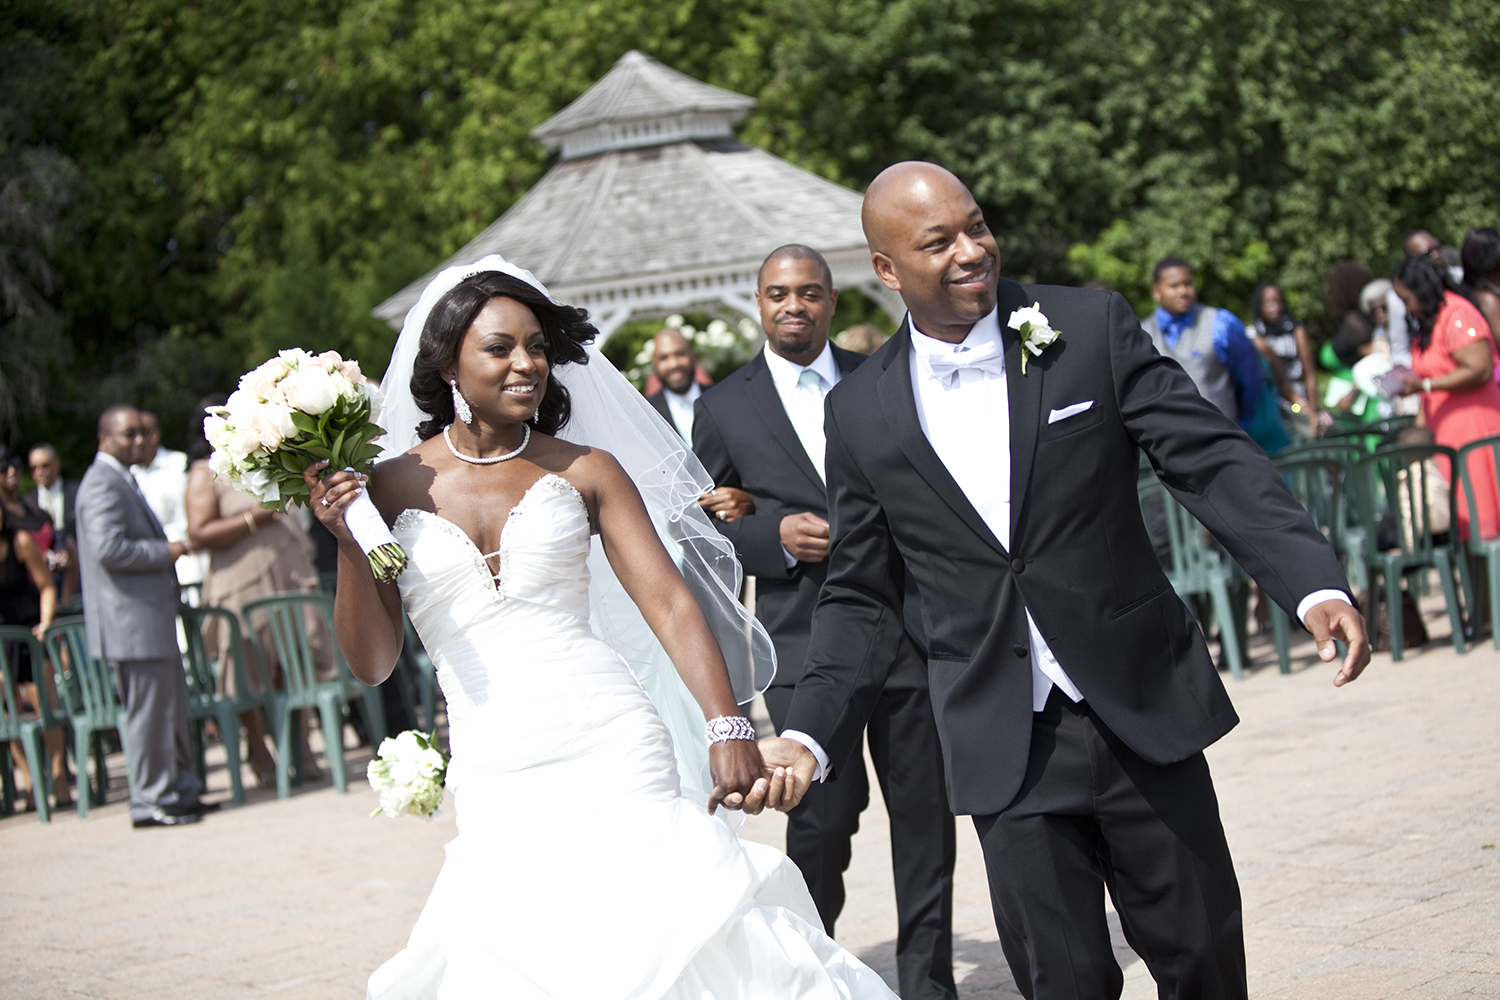 Bride and Groom leave the wedding ceremony at Deer Creek Golf and Banquet Facility in Ajax